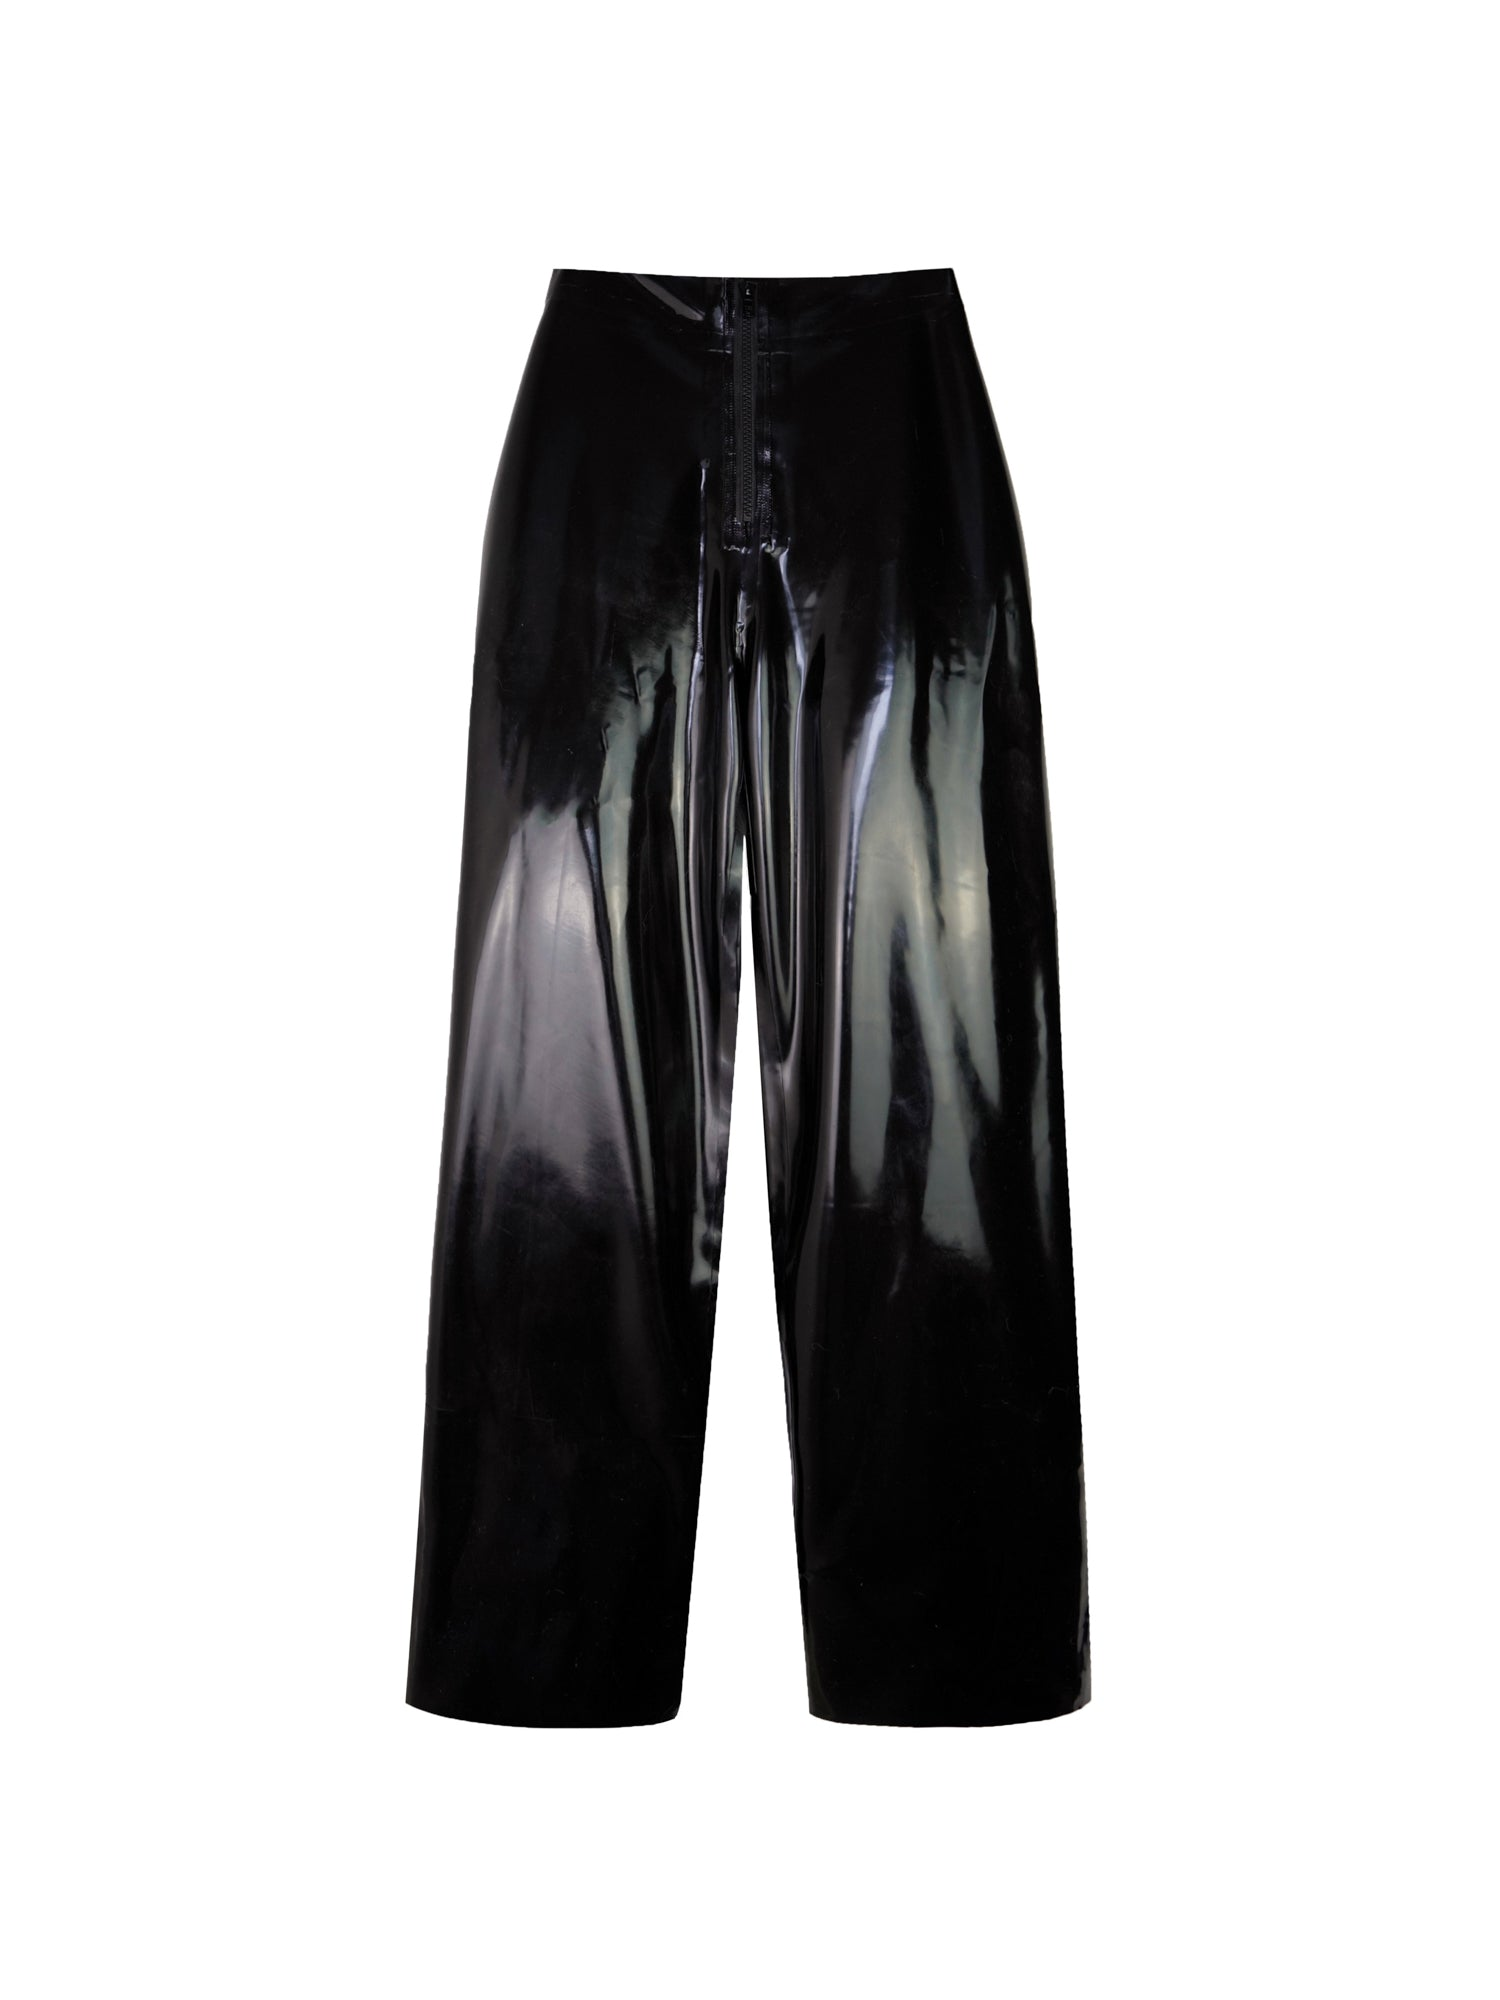 Studio Fclx PANDEMIC IV Latex Trousers